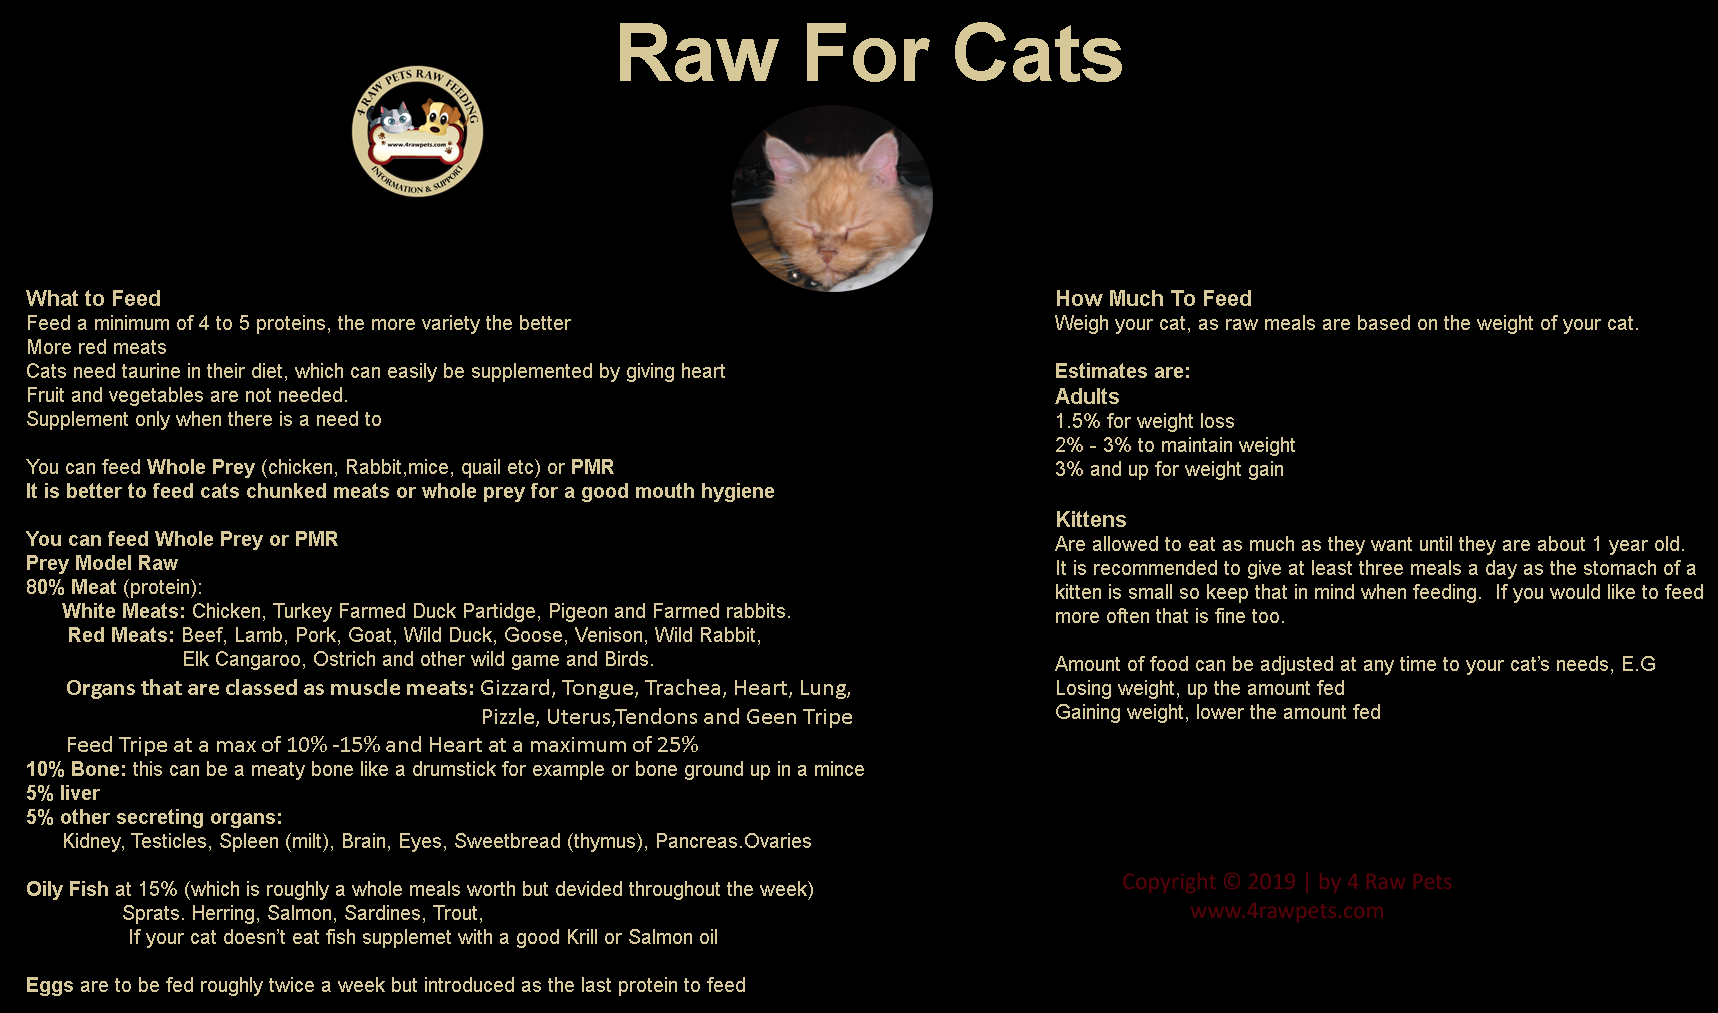 Raw for cats